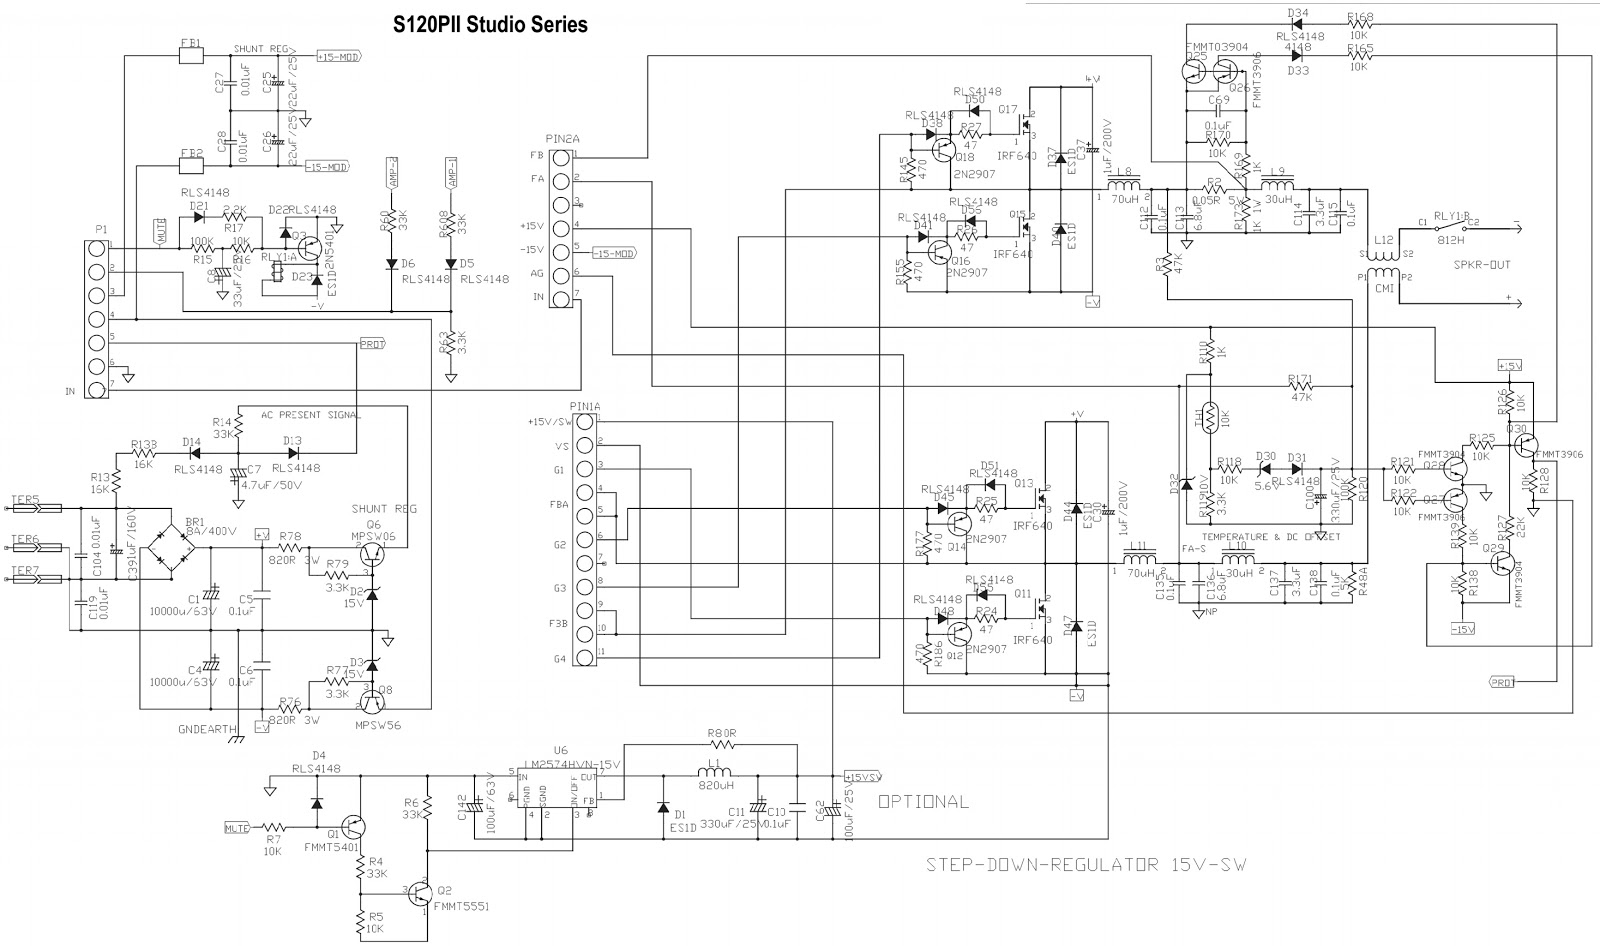 small resolution of jbl s120pii powered subwoofer schematic